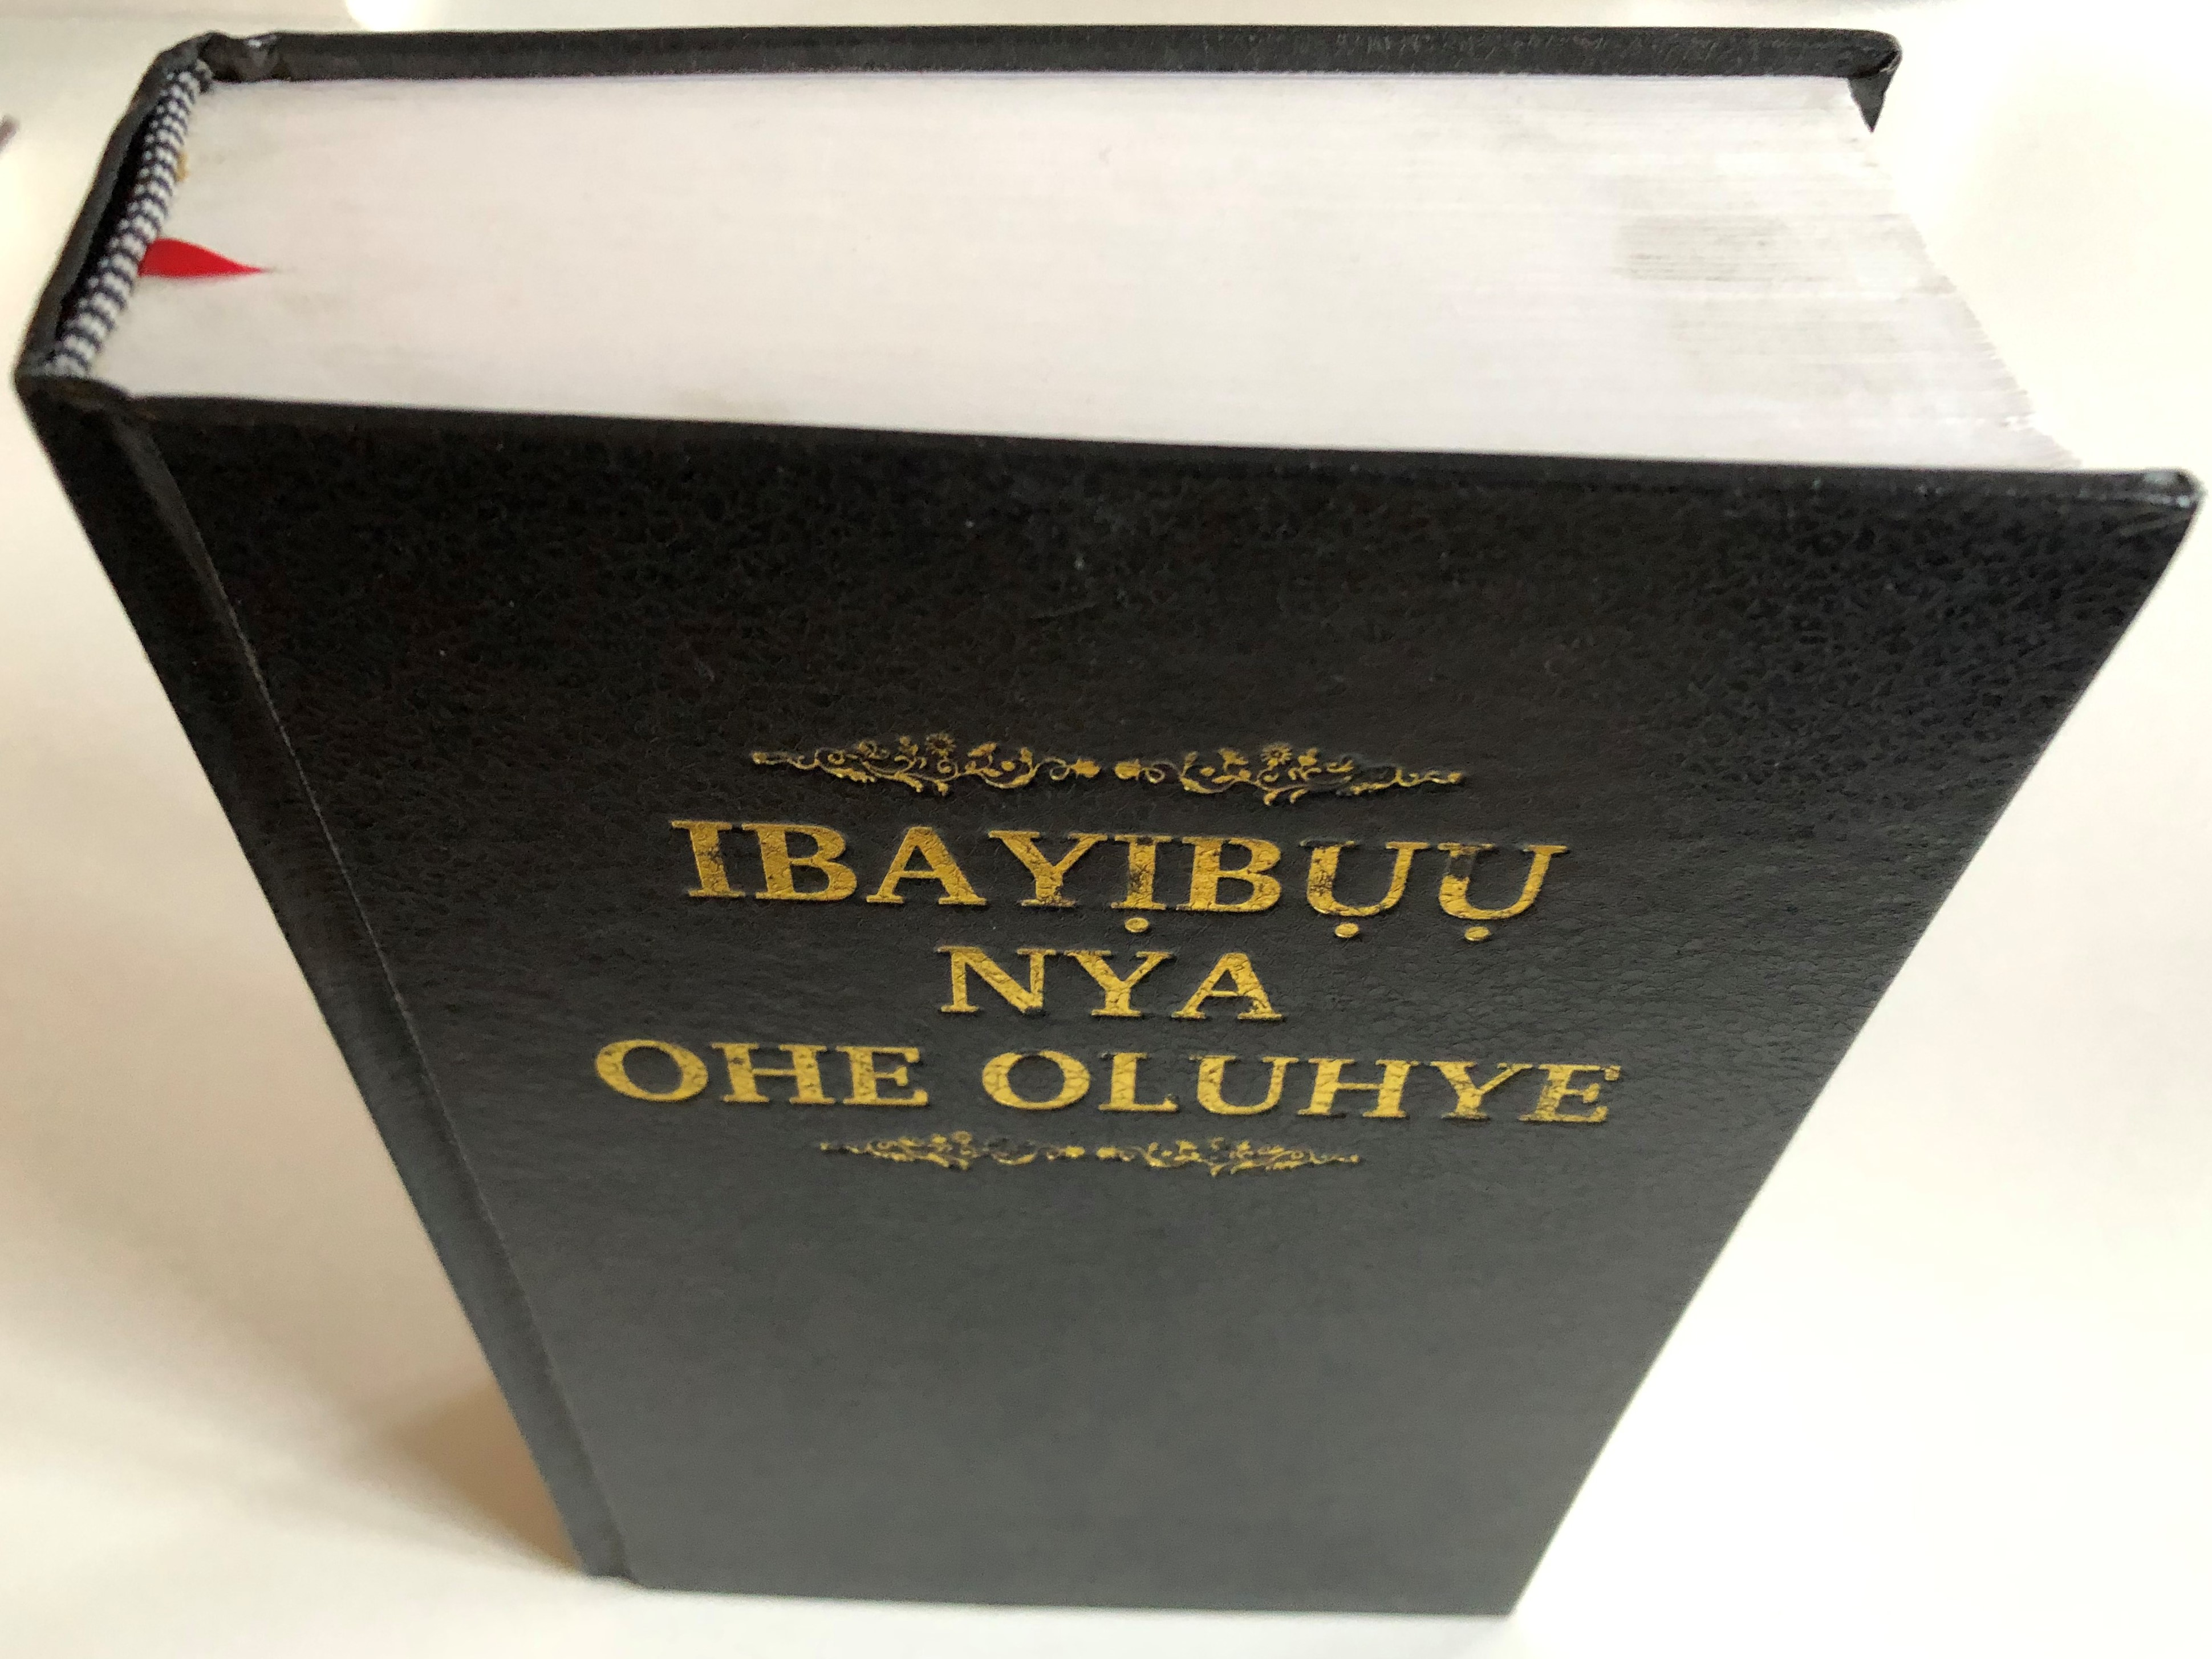 igede-holy-bible-ibayibuu-nya-oluhye-bible-society-of-nigeria-2013-15.jpg